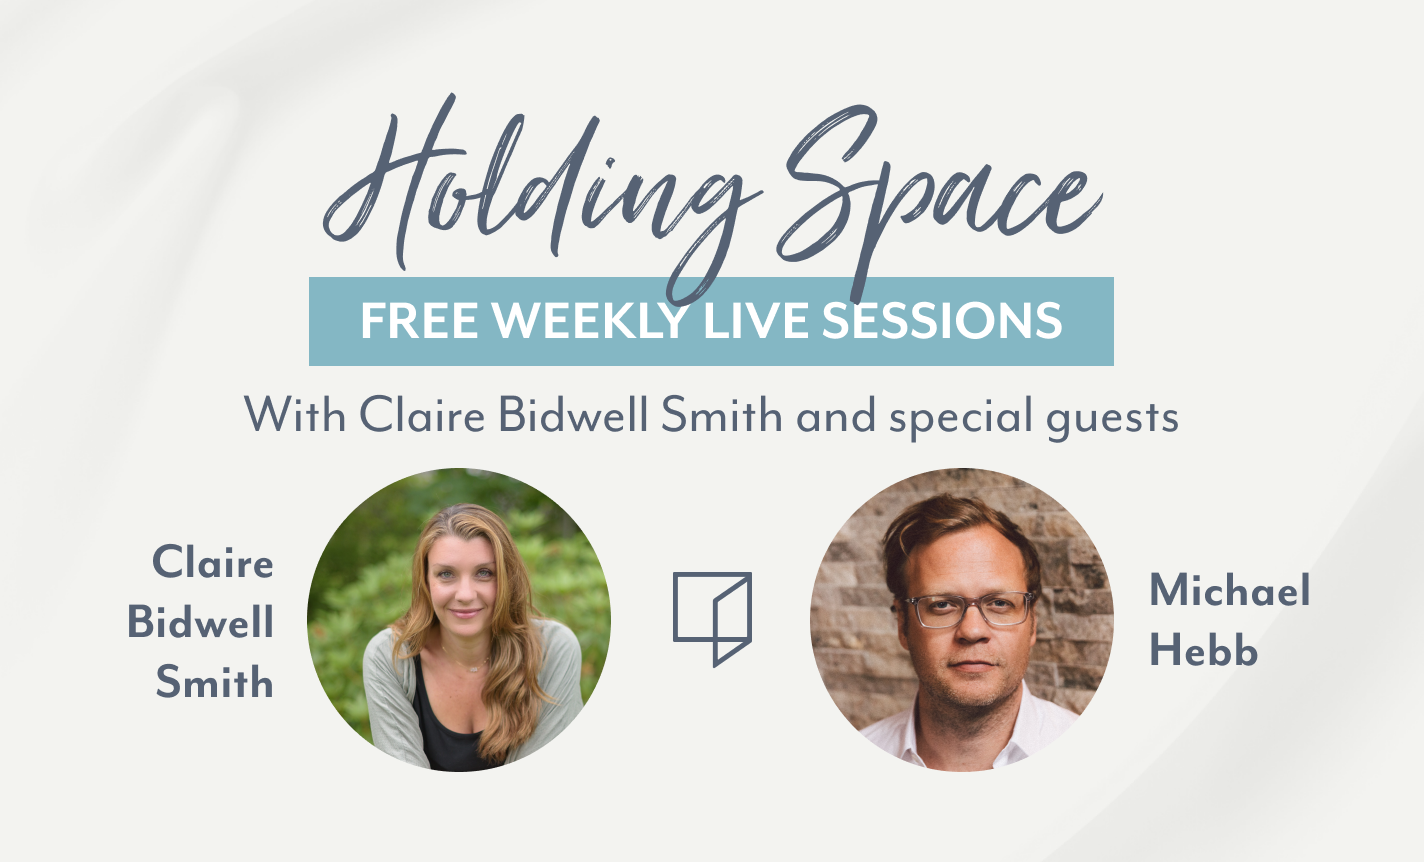 Holding Space with Claire Bidwell Smith and Michael Hebb